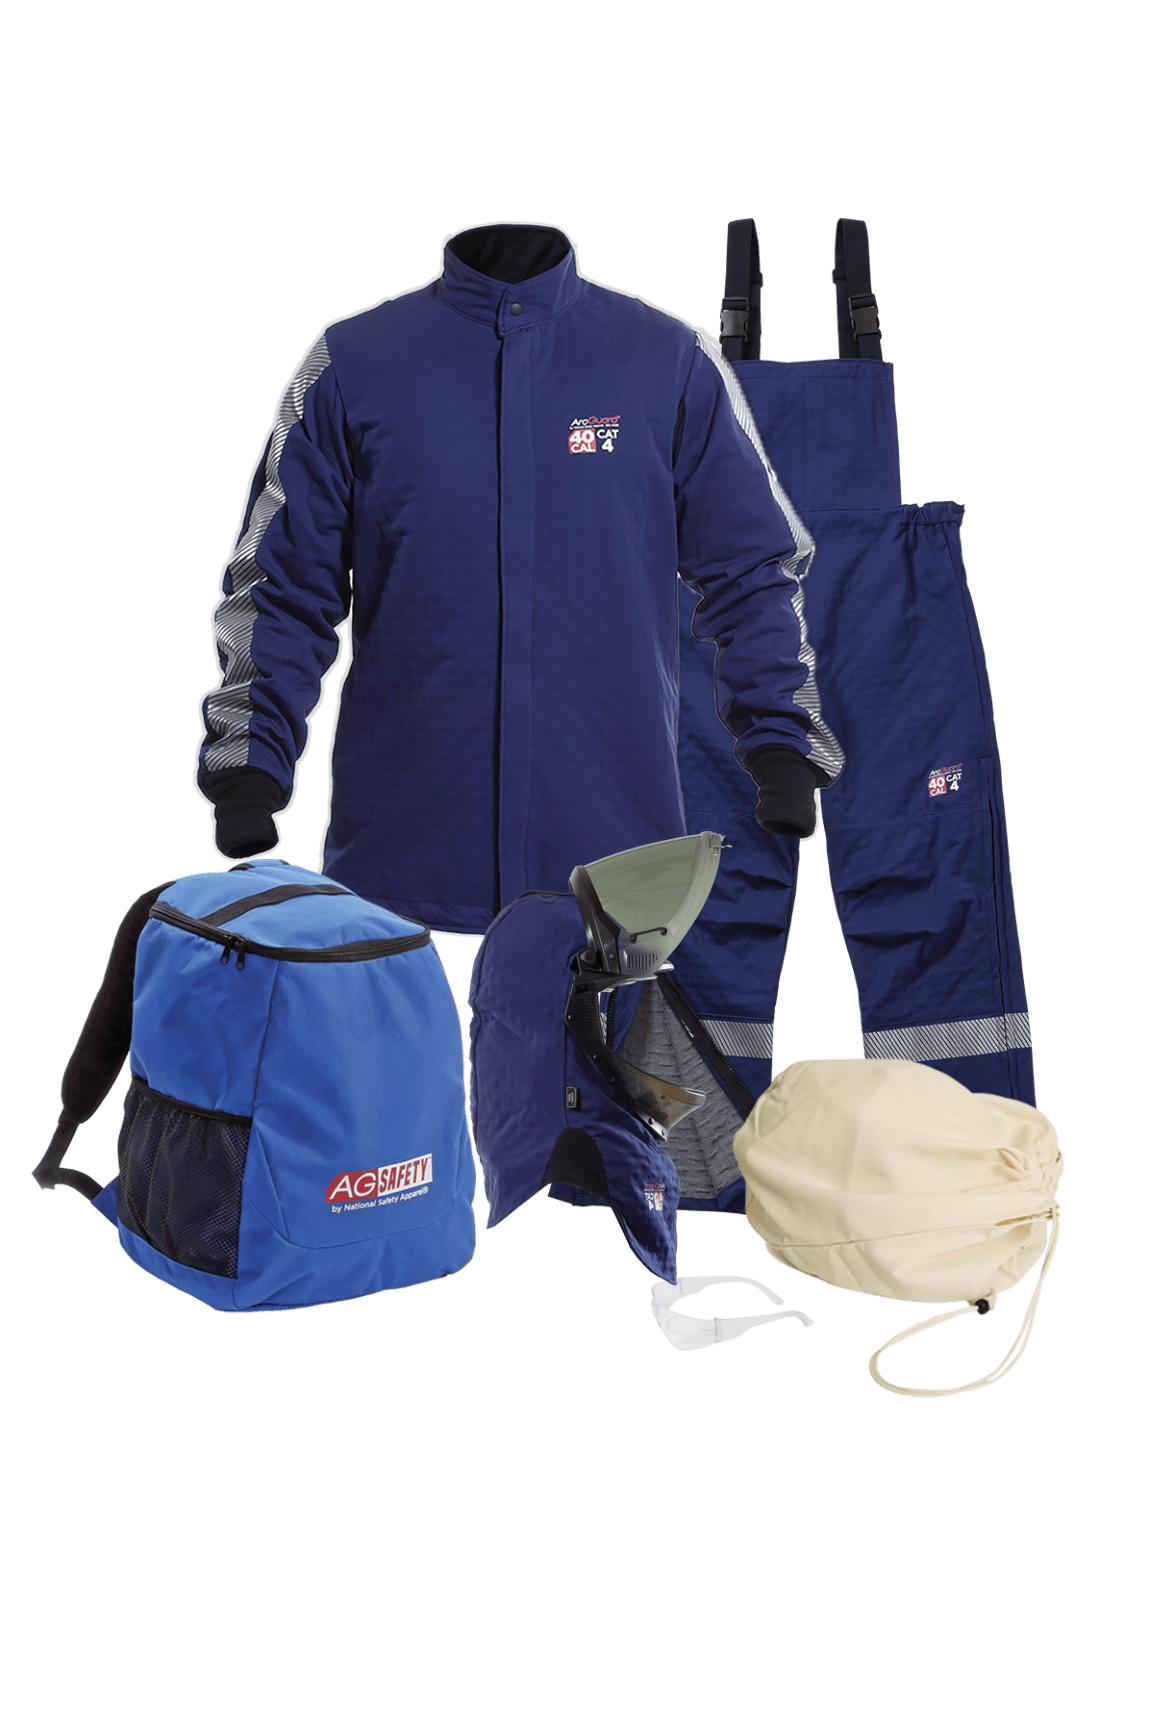 Product Spotlight: What's New in PPE?